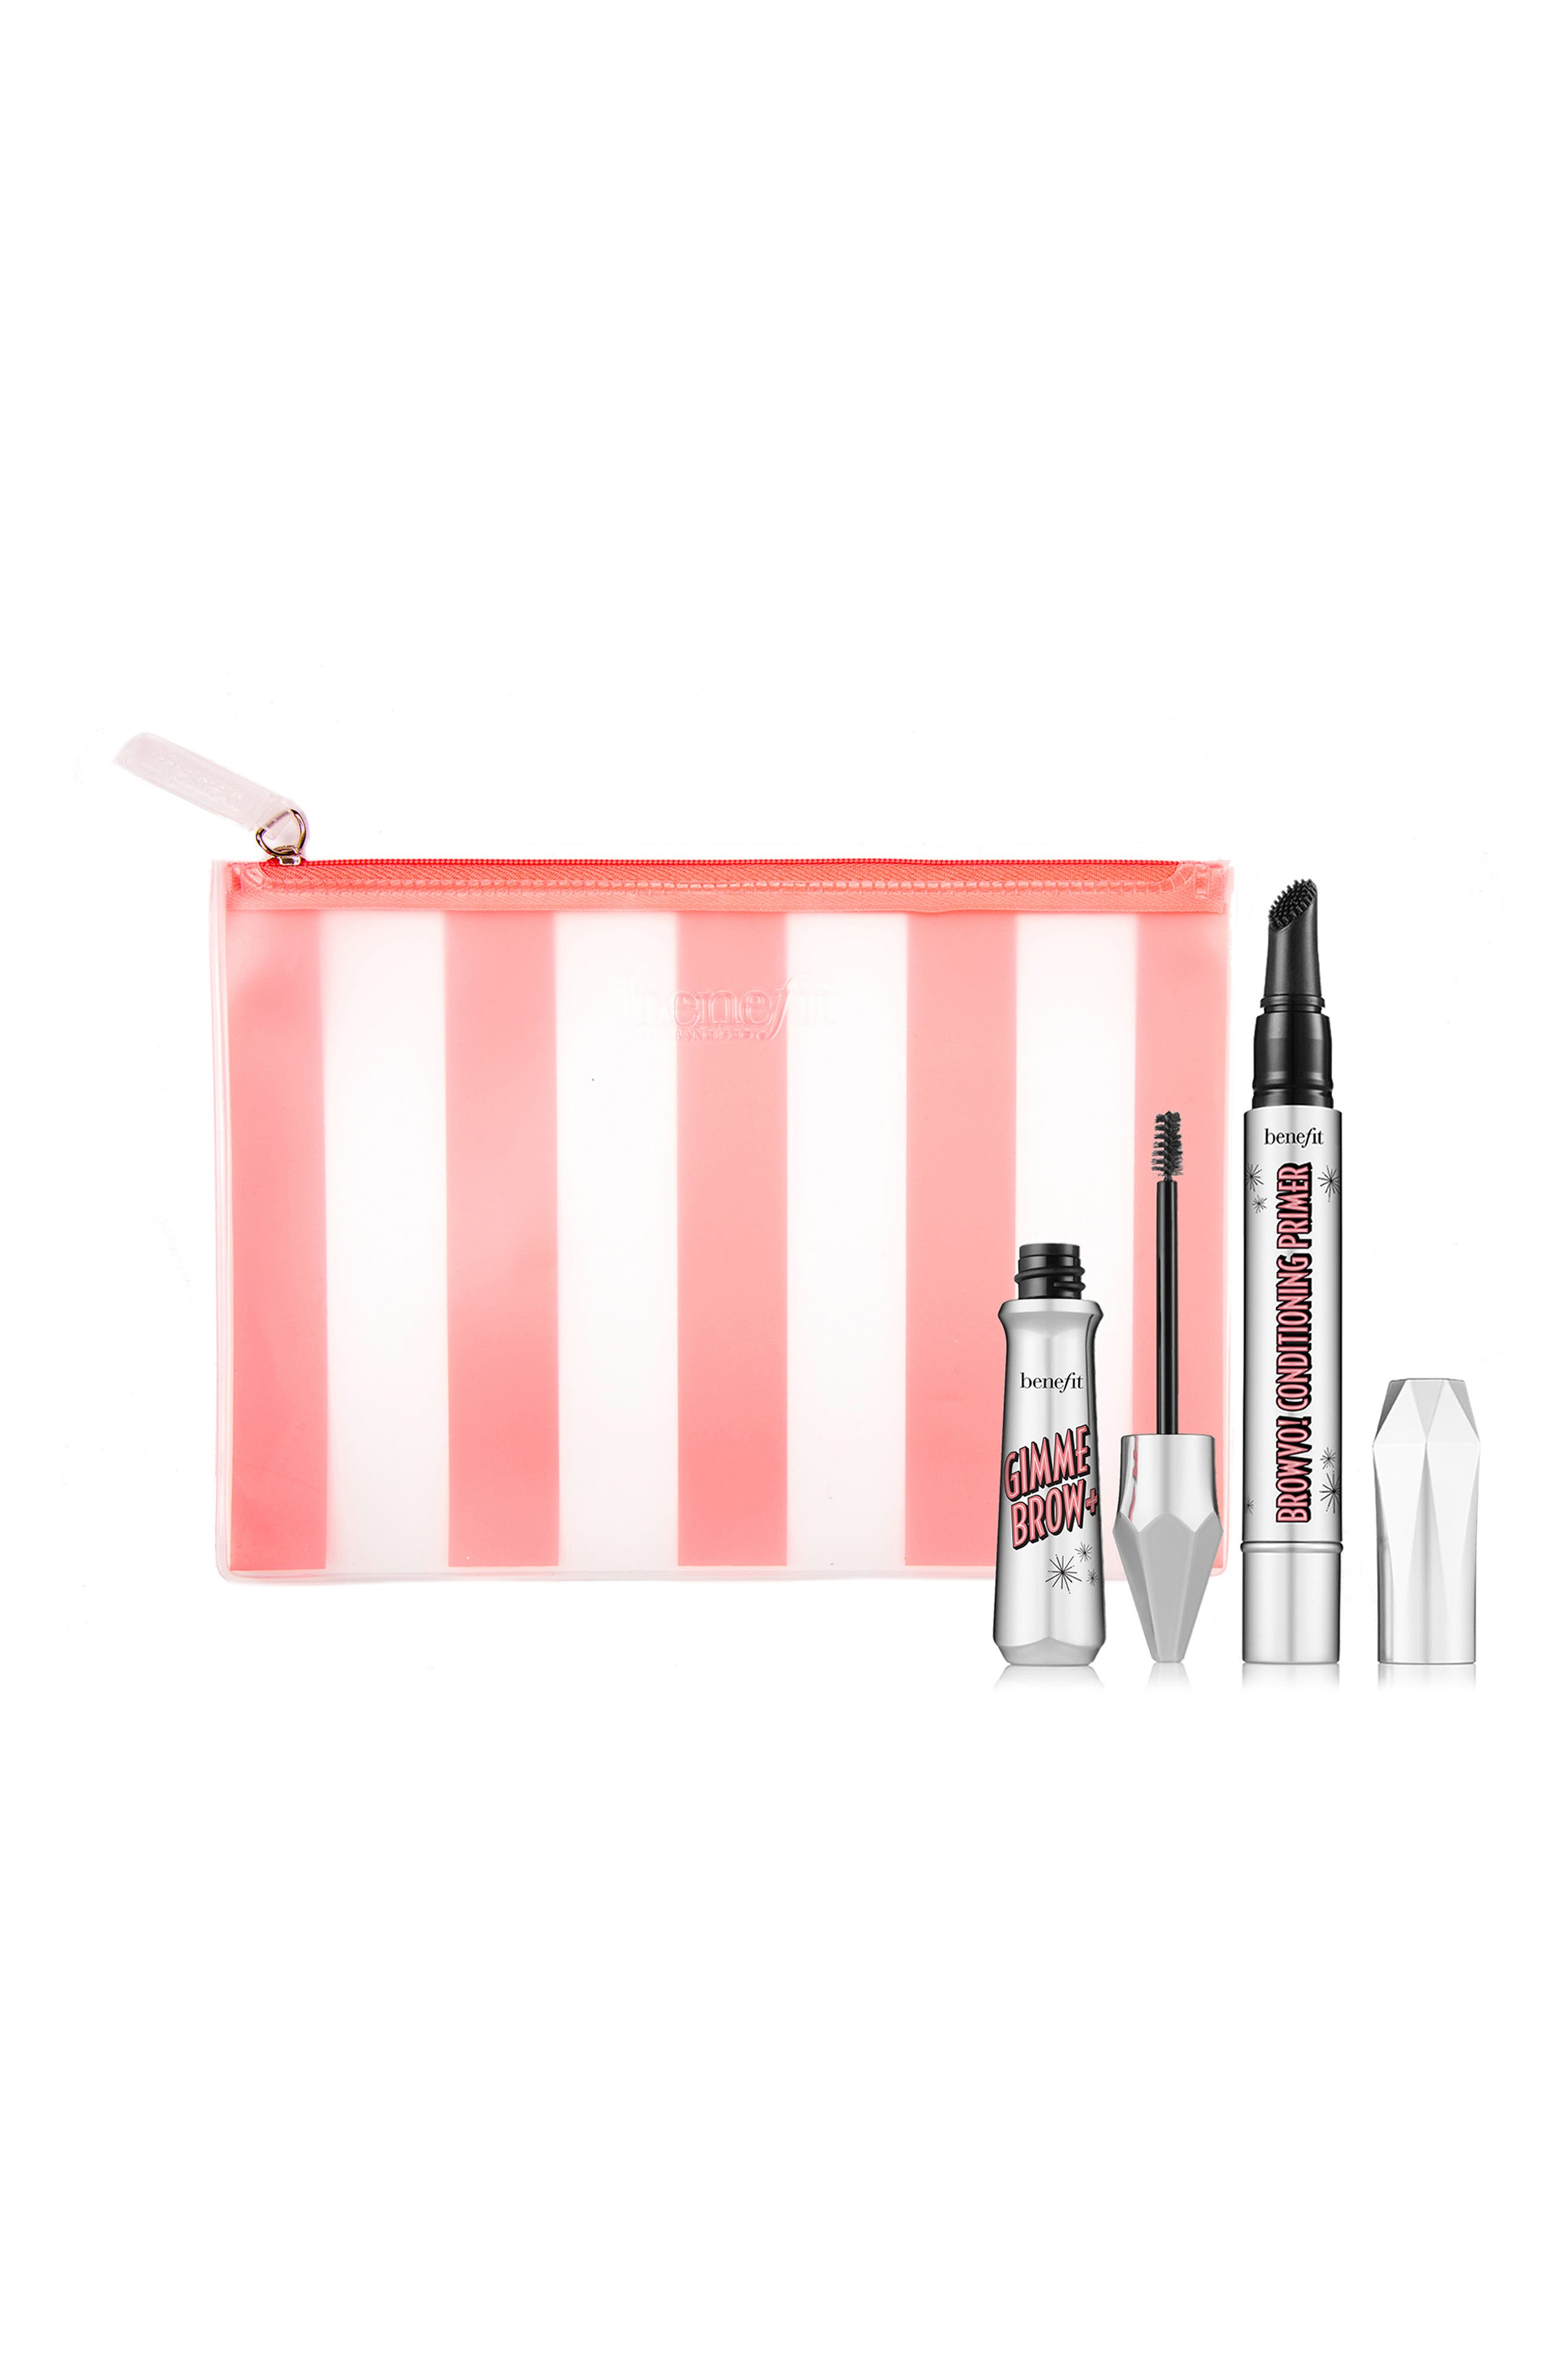 Benefit Gimme Full Brows Set,                             Alternate thumbnail 2, color,                             03 MEDIUM/LIGHT BROWN